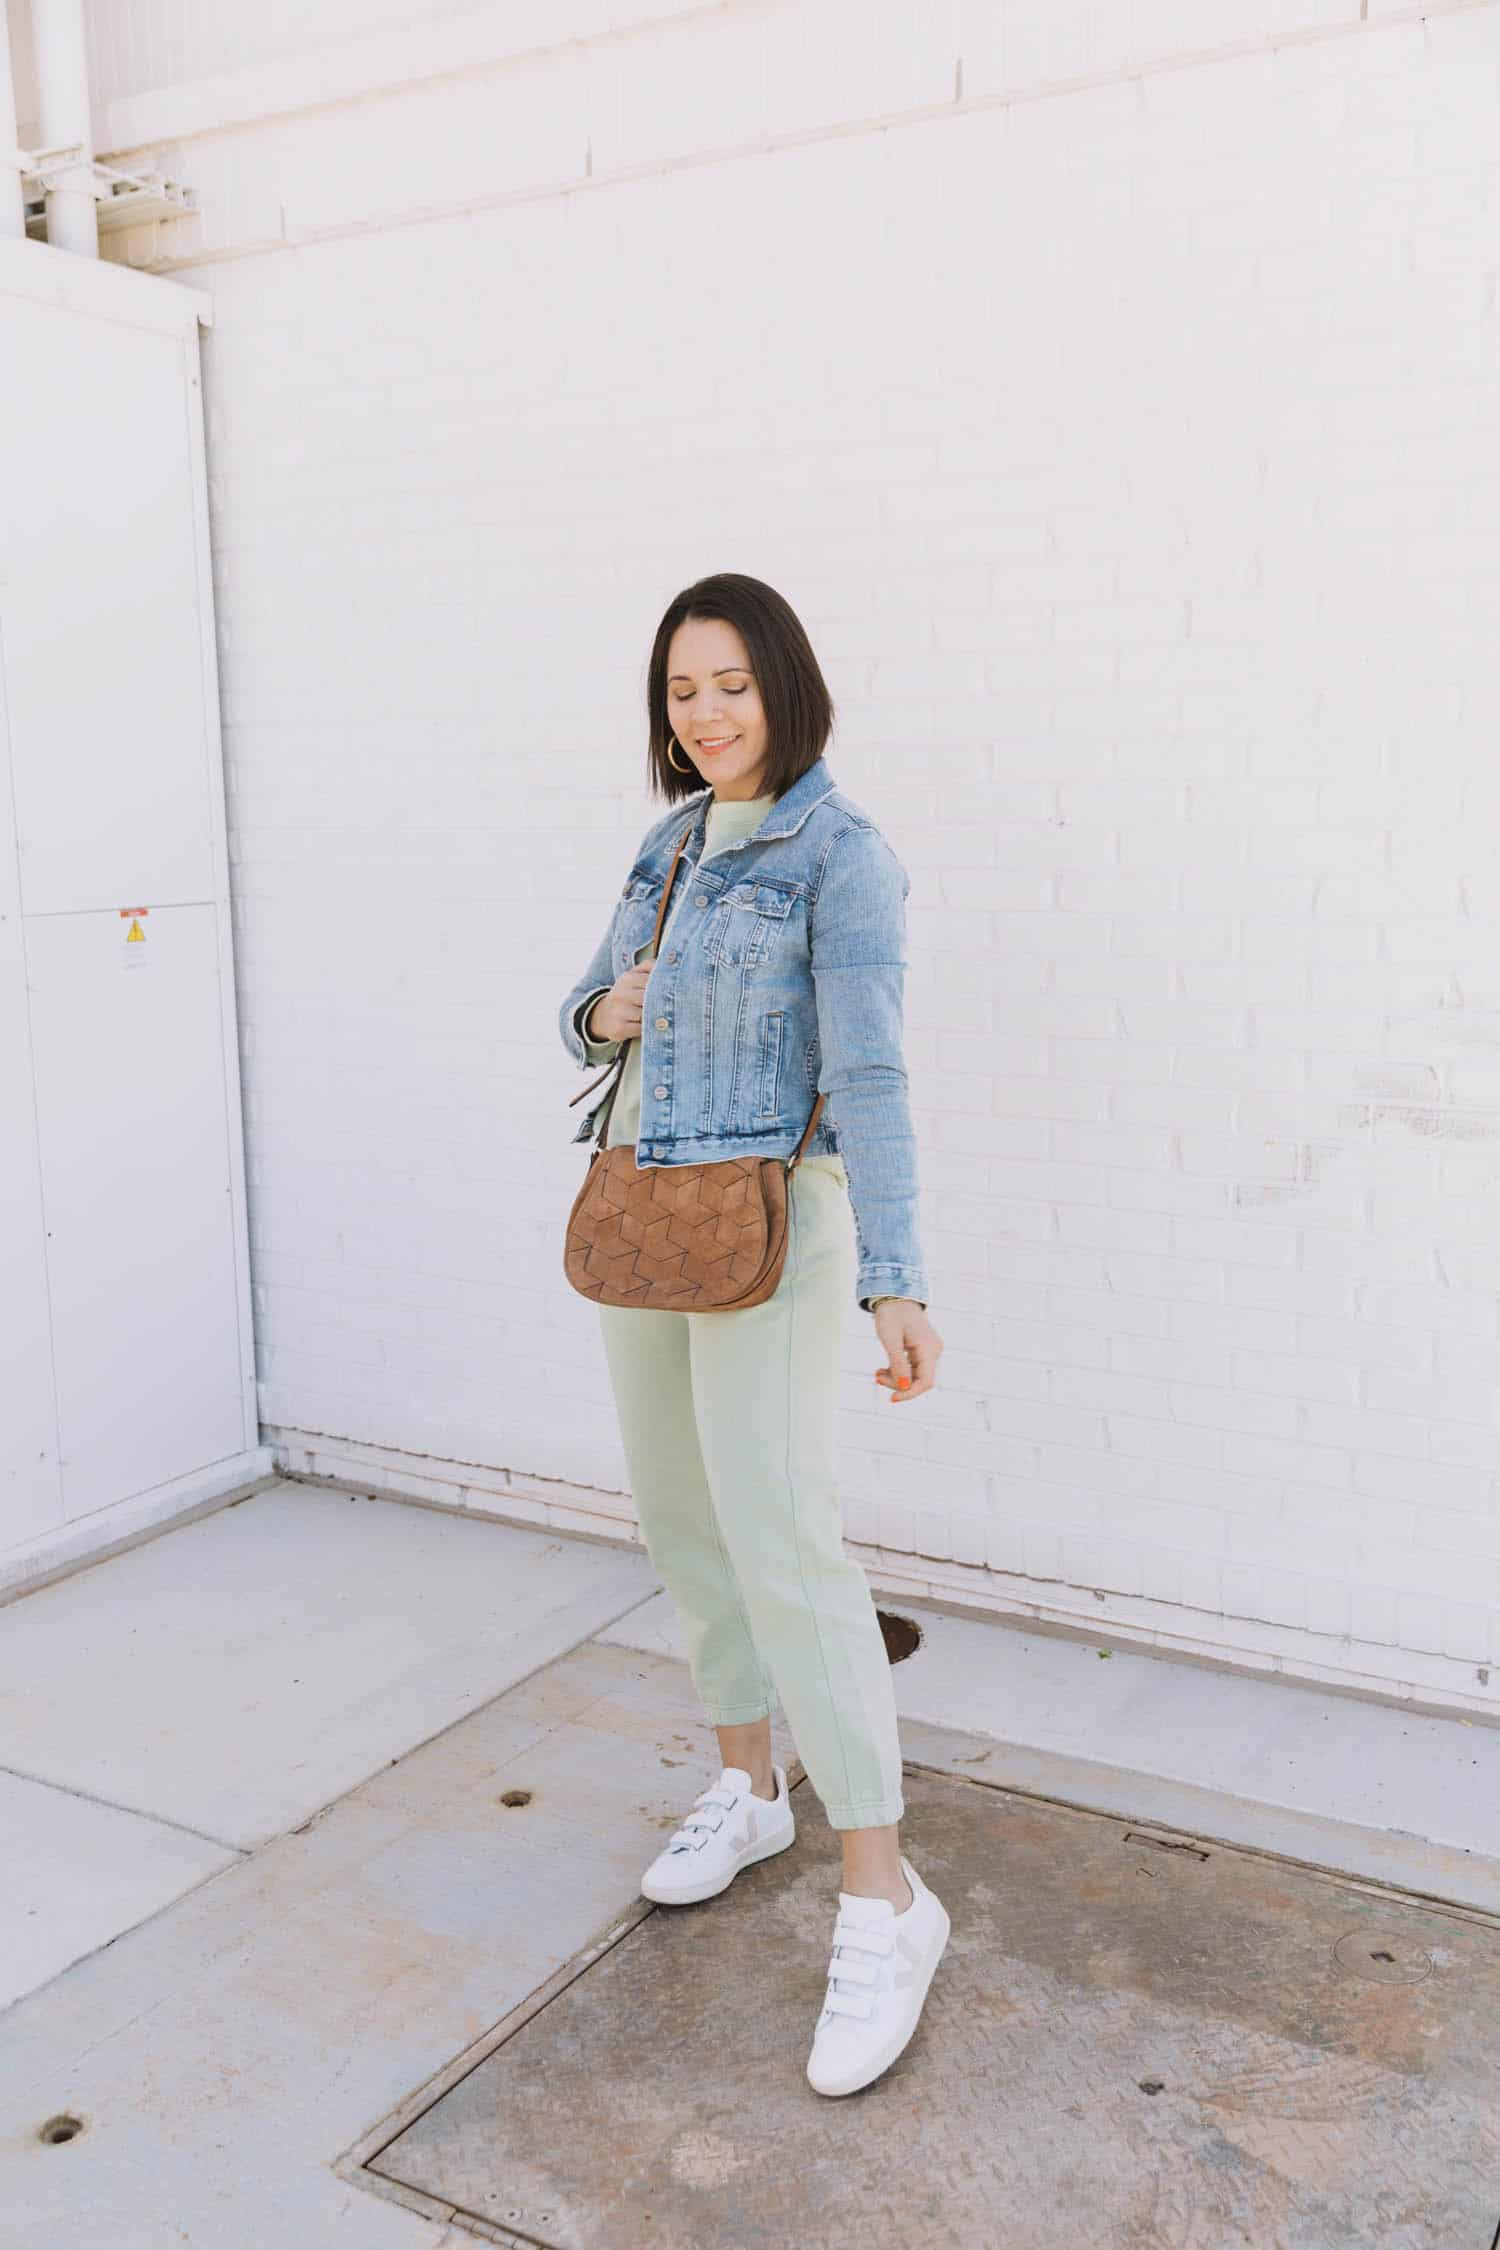 Everlane tracksuit | Color Crushing On Minty Green